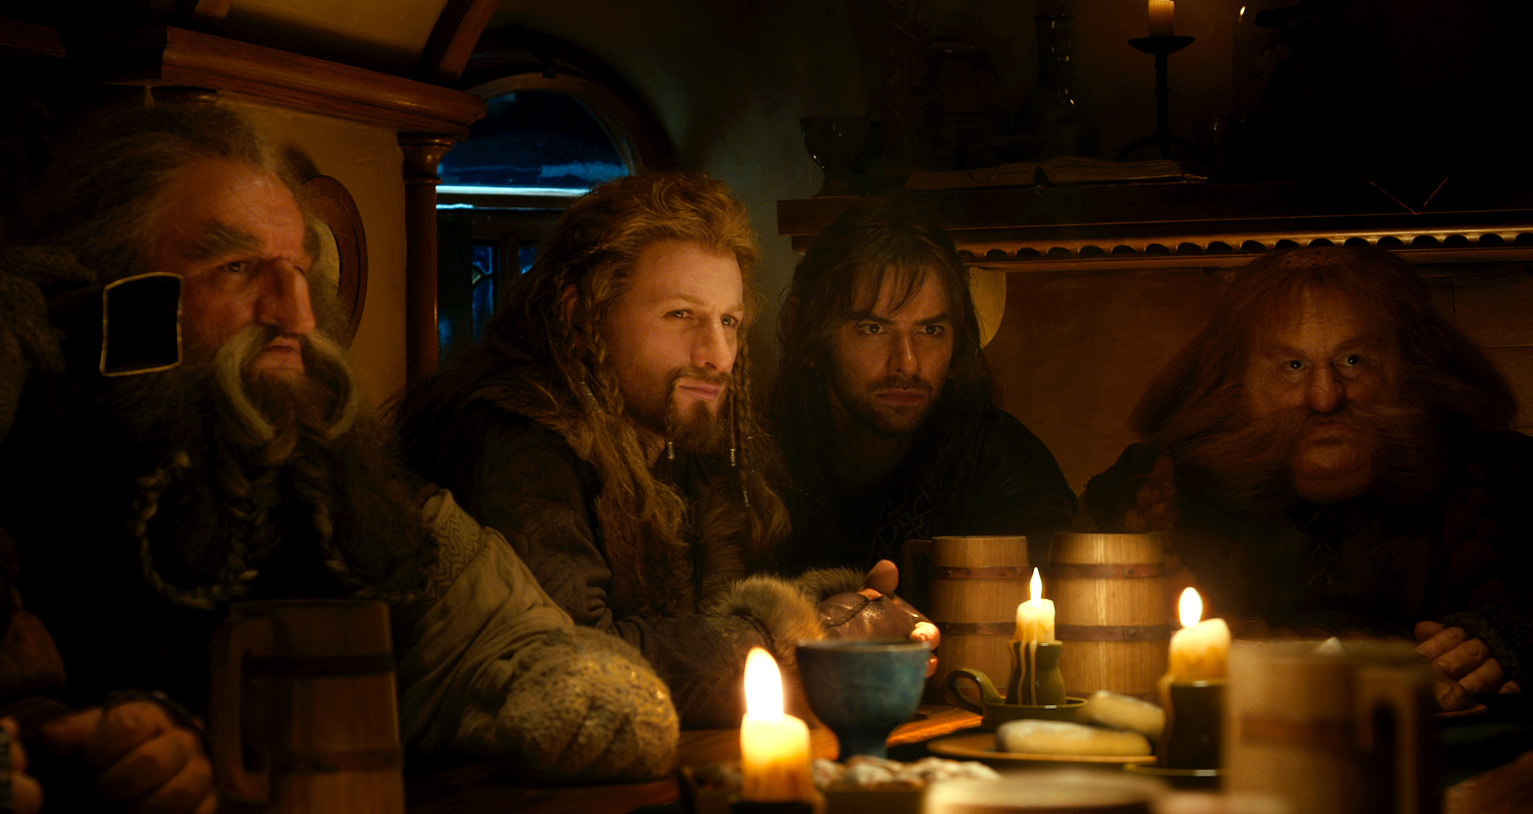 John Callen, Dean O'Gorman, Stephen Hunter, and Aidan Turner in The Hobbit: An Unexpected Journey (2012)